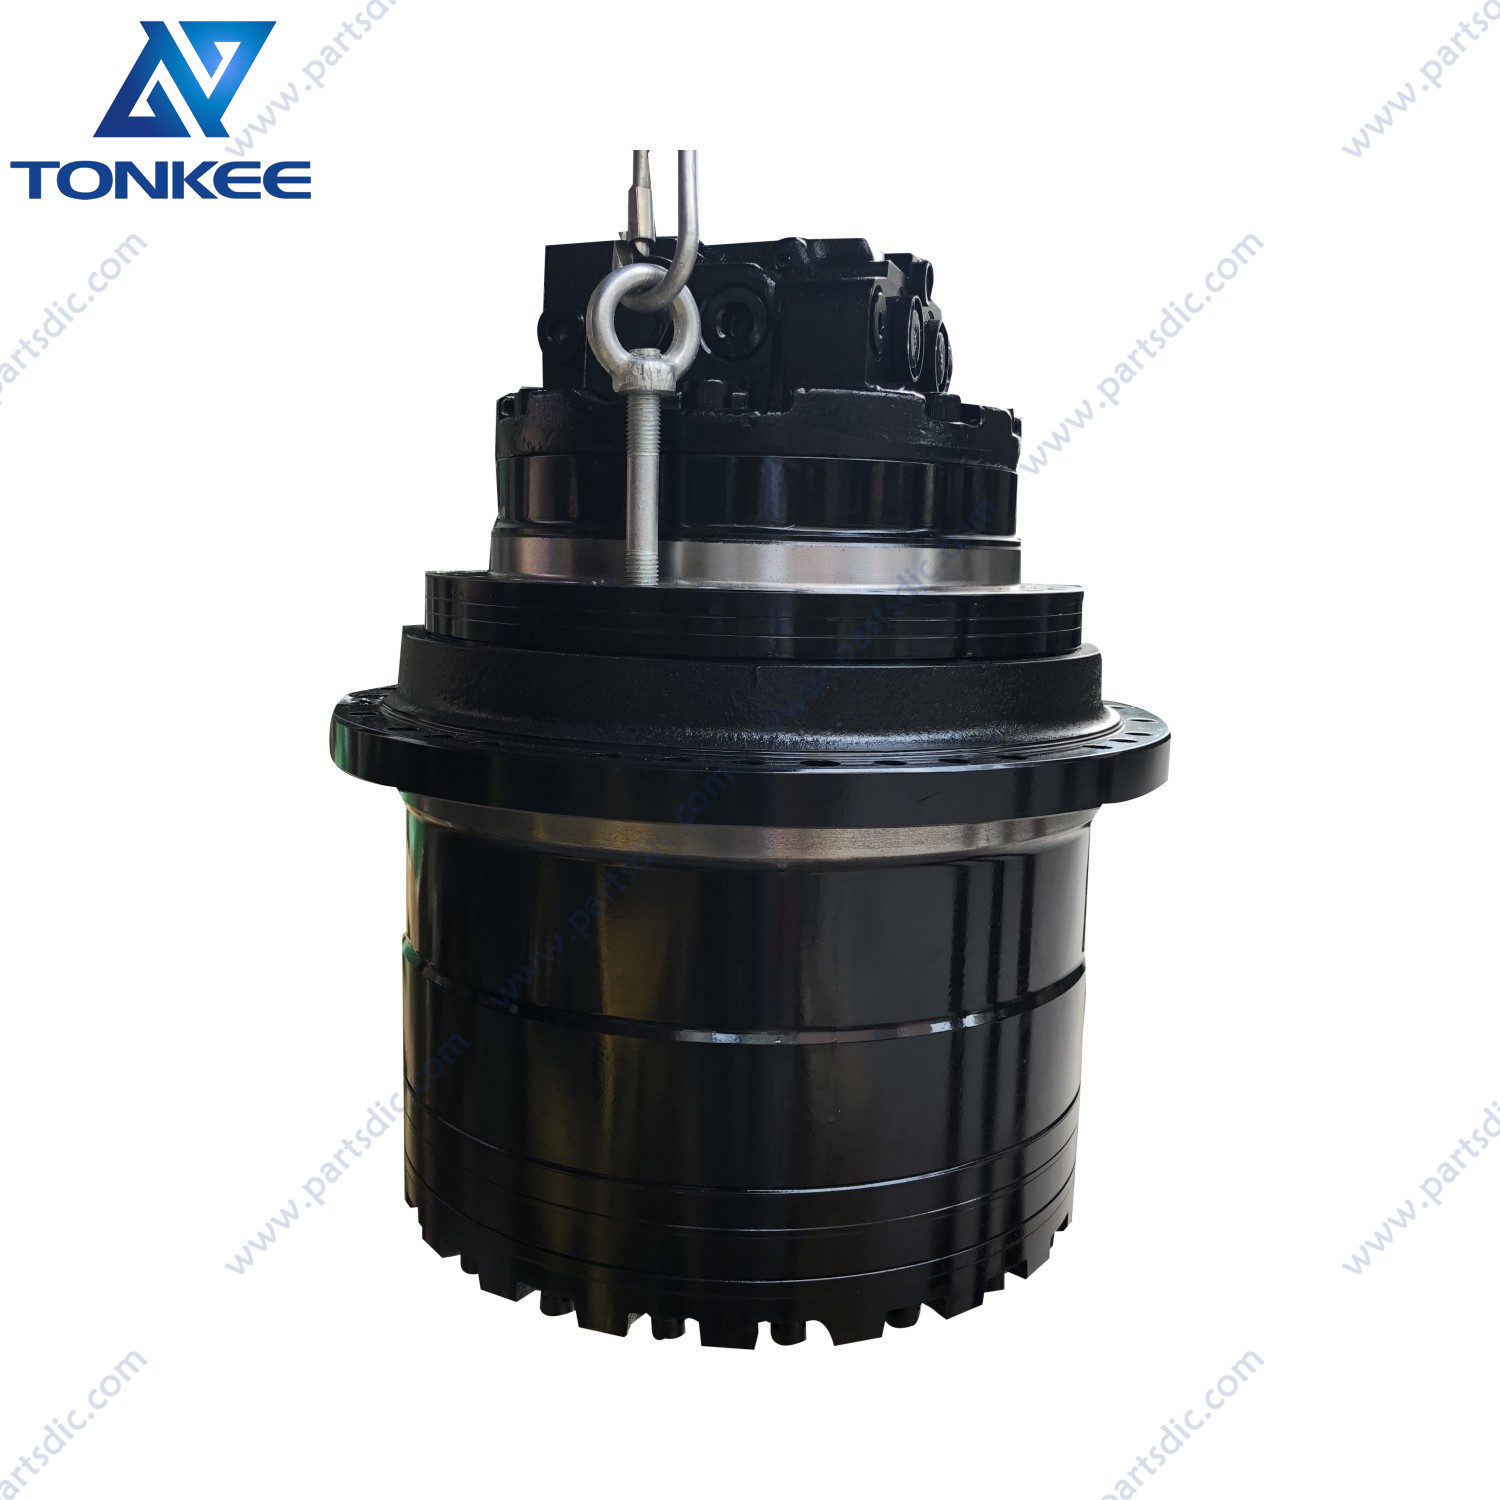 VOE14533651 excavator track device EC210B EC240B final drive TM40VC travel motor Assy for VOLVO